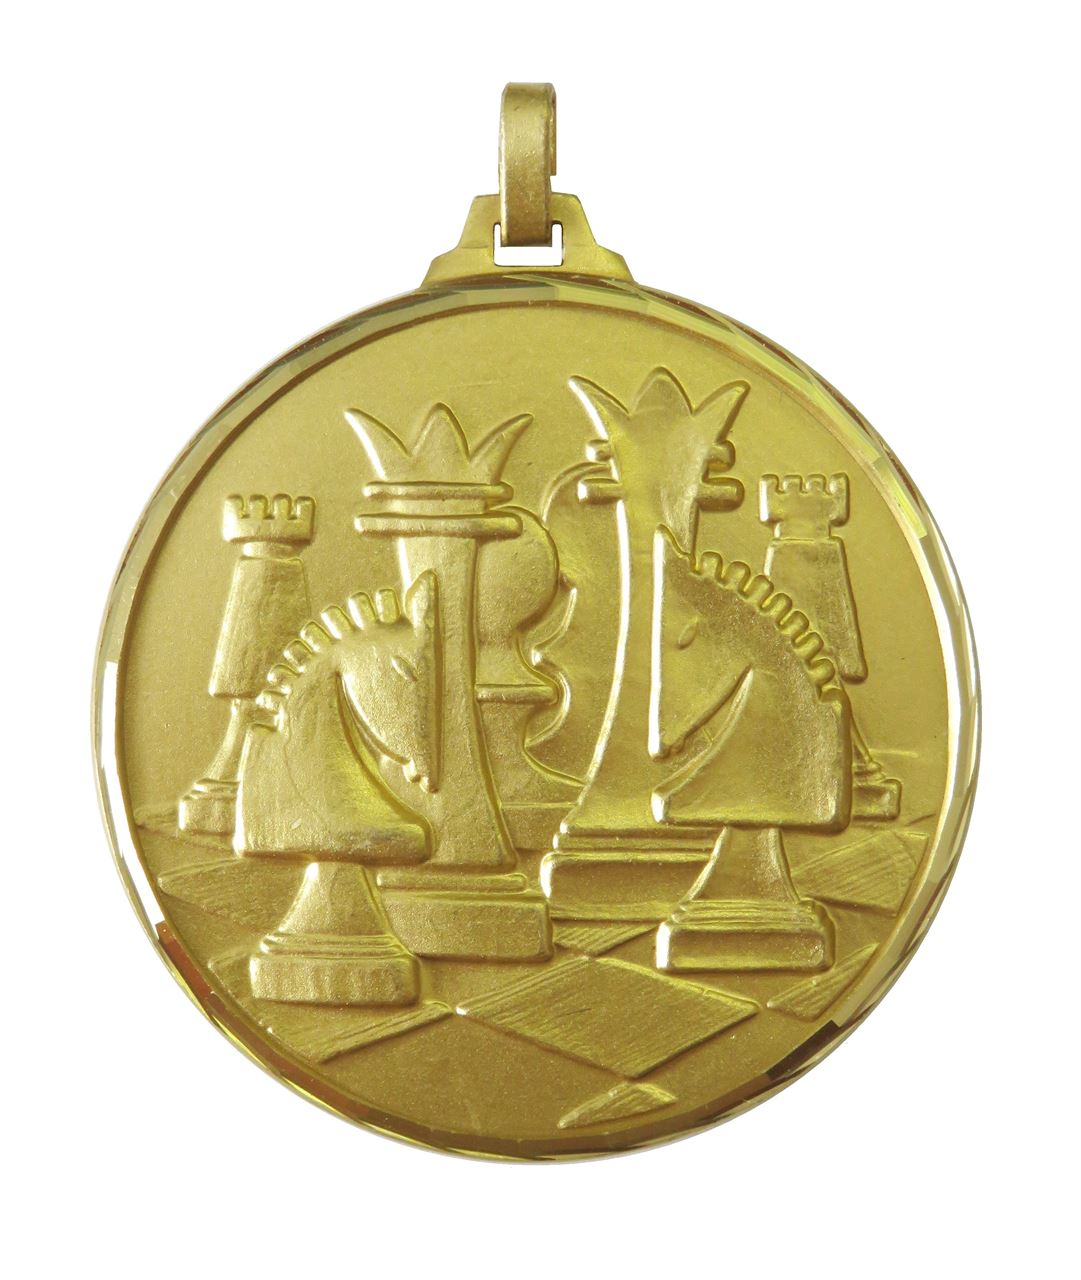 Gold Faceted Chess Medal (size: 52mm) - 376F